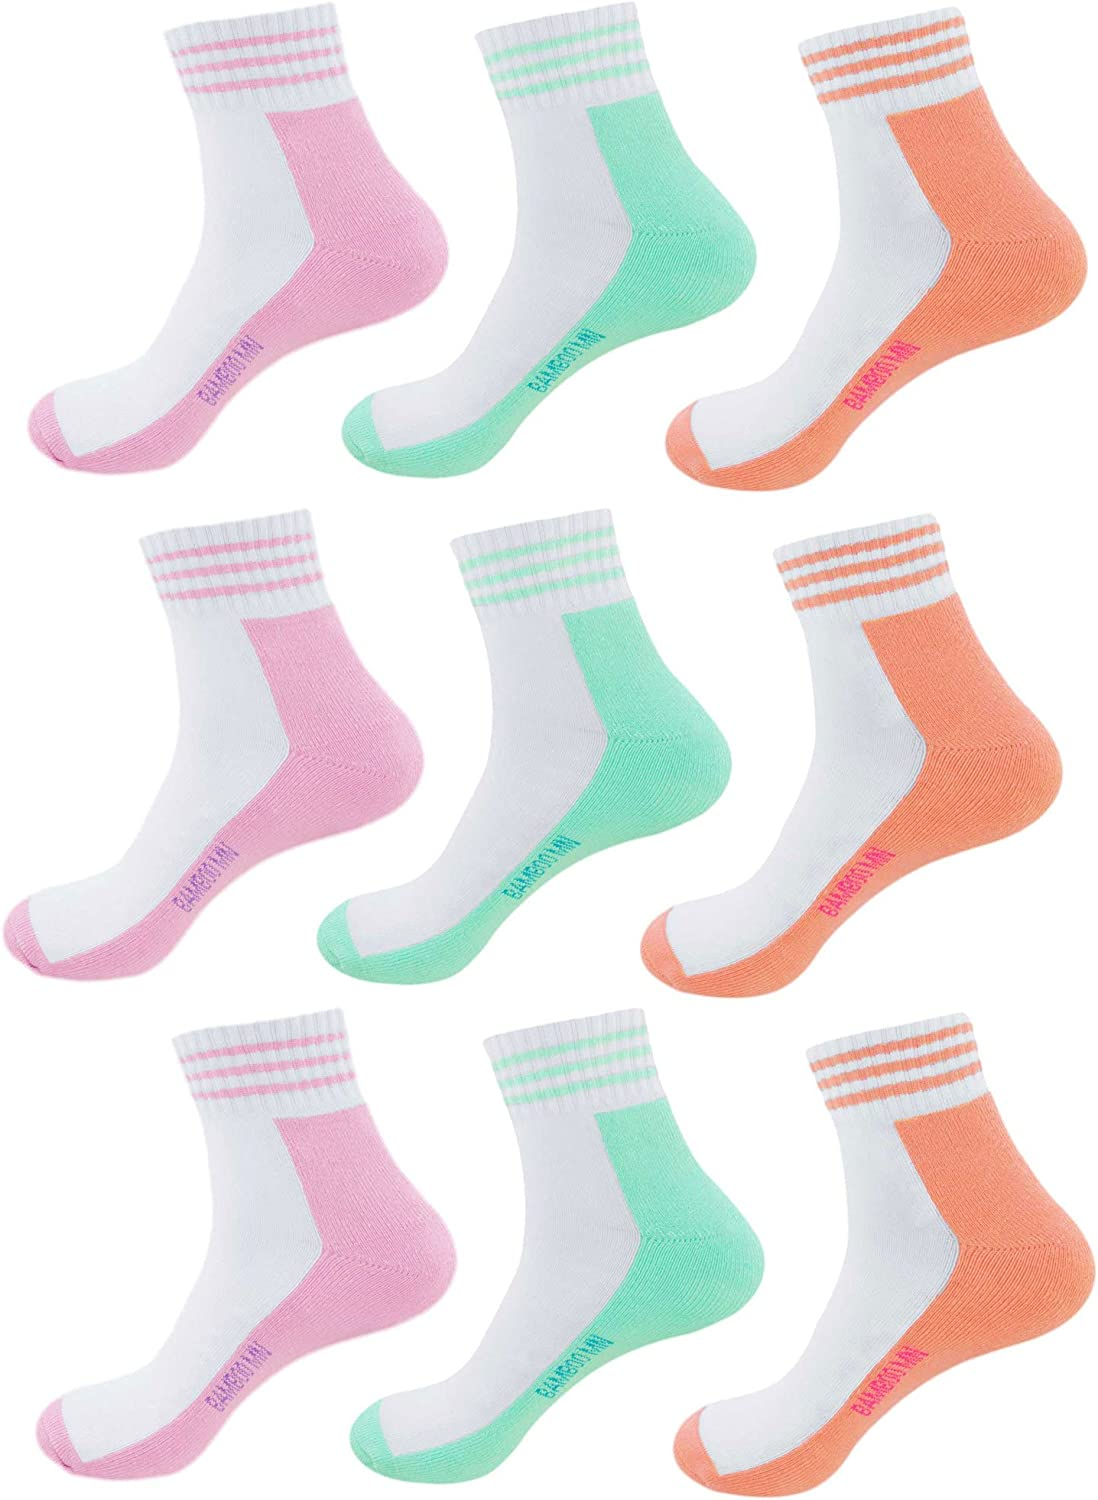 Womens Vintage Retro Bright Colored Cozy Cotton Comfy Moisture Wicking Classic Stylish Ankle Socks 9 Pair Value Pack